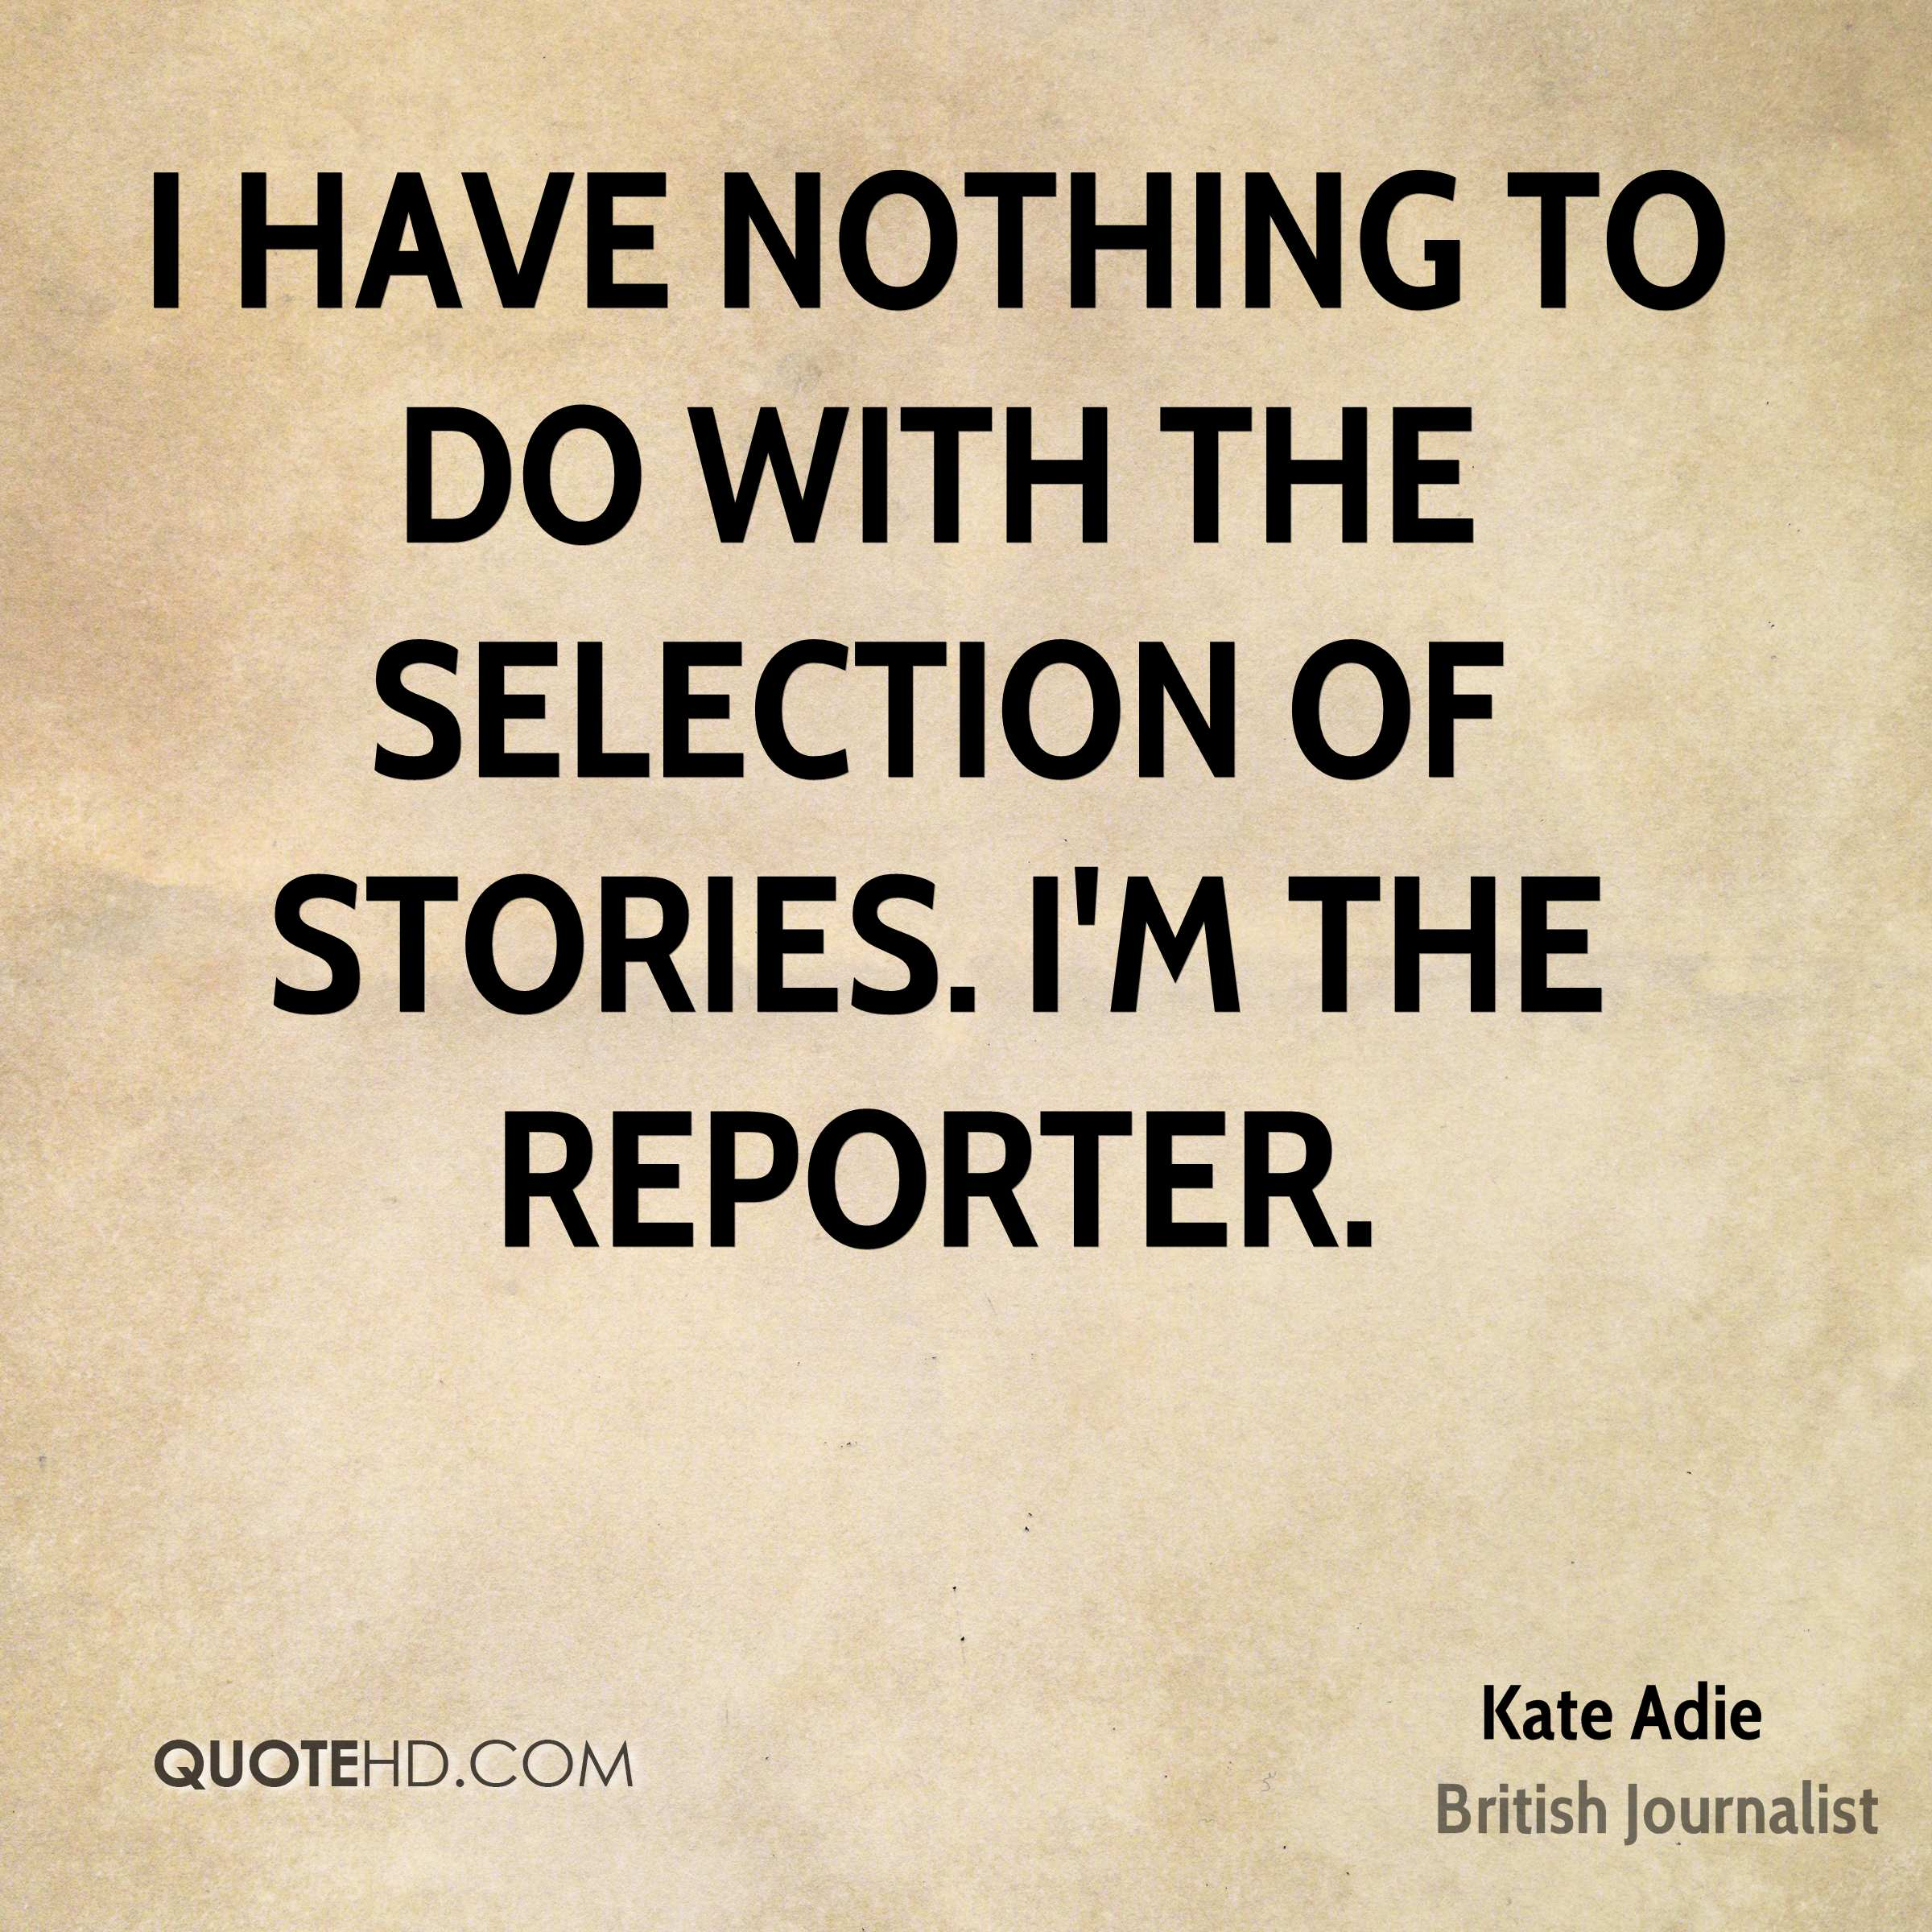 The Selection Quotes Kate Adie Quotes  Quotehd